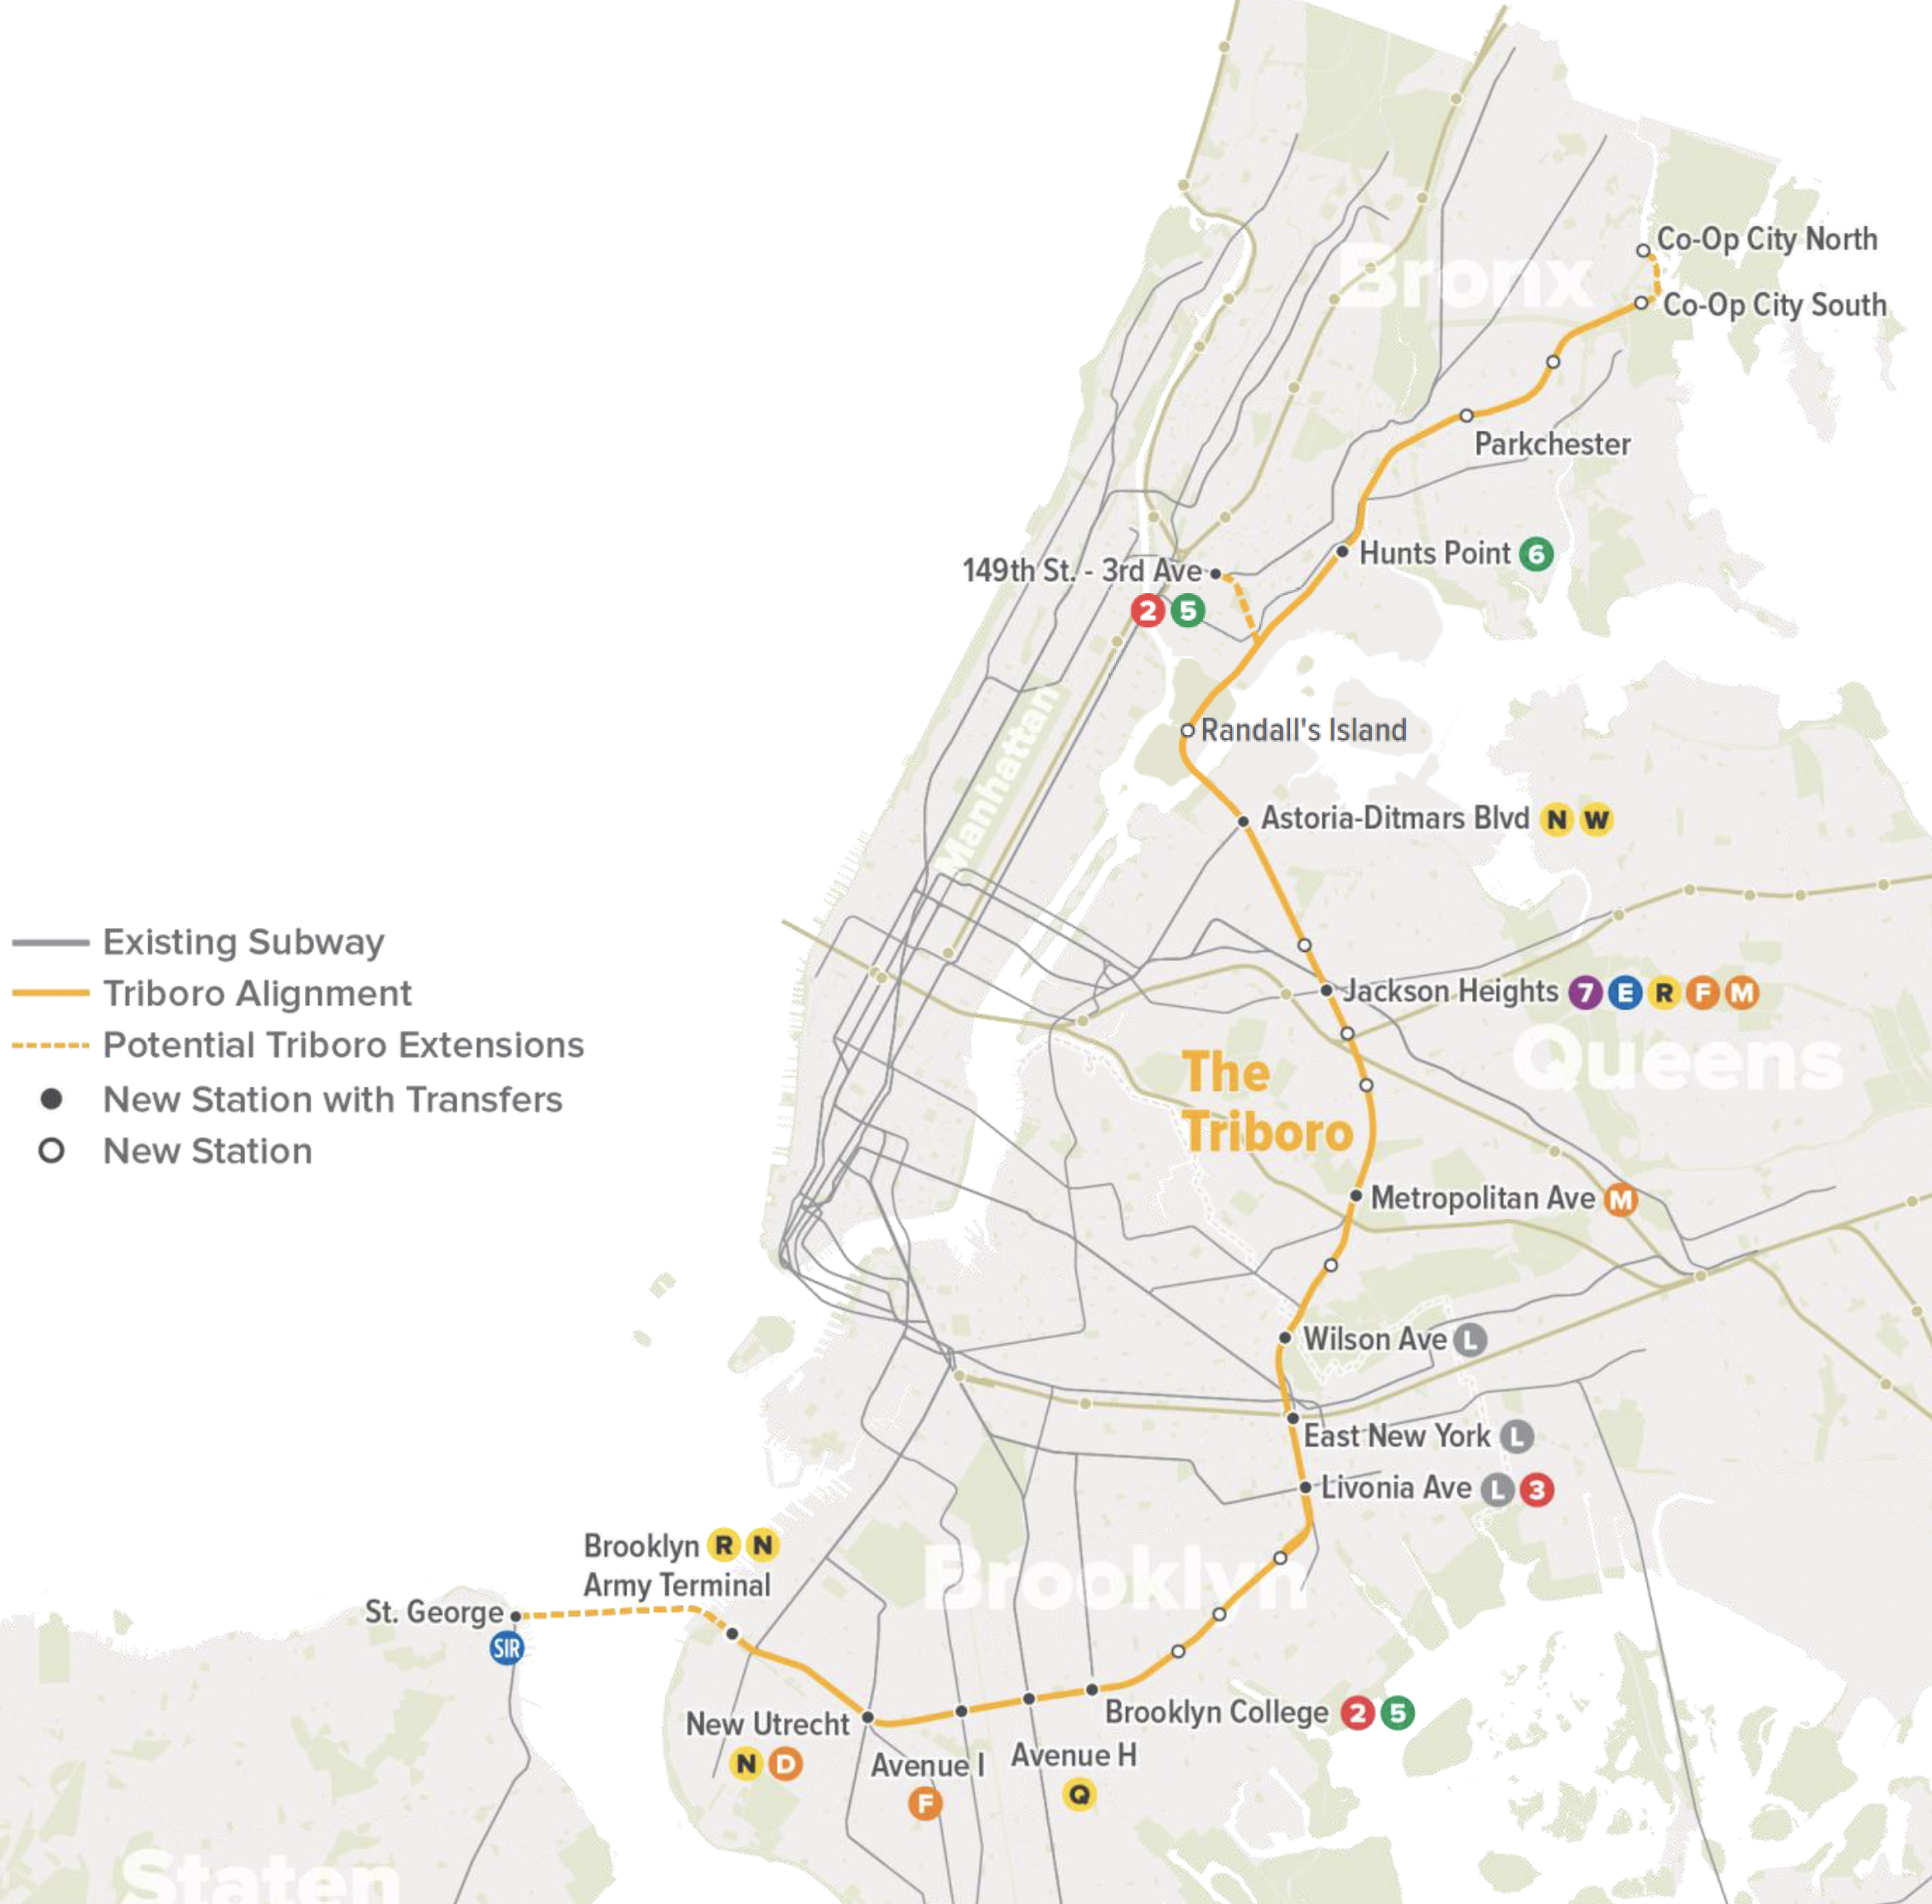 The Triboro would be an above-ground rail stretching 24 miles from Co-op City in the Bronx to Bay Ridge in Brooklyn, with seven stops in Queens. Maps courtesy of the RPA.